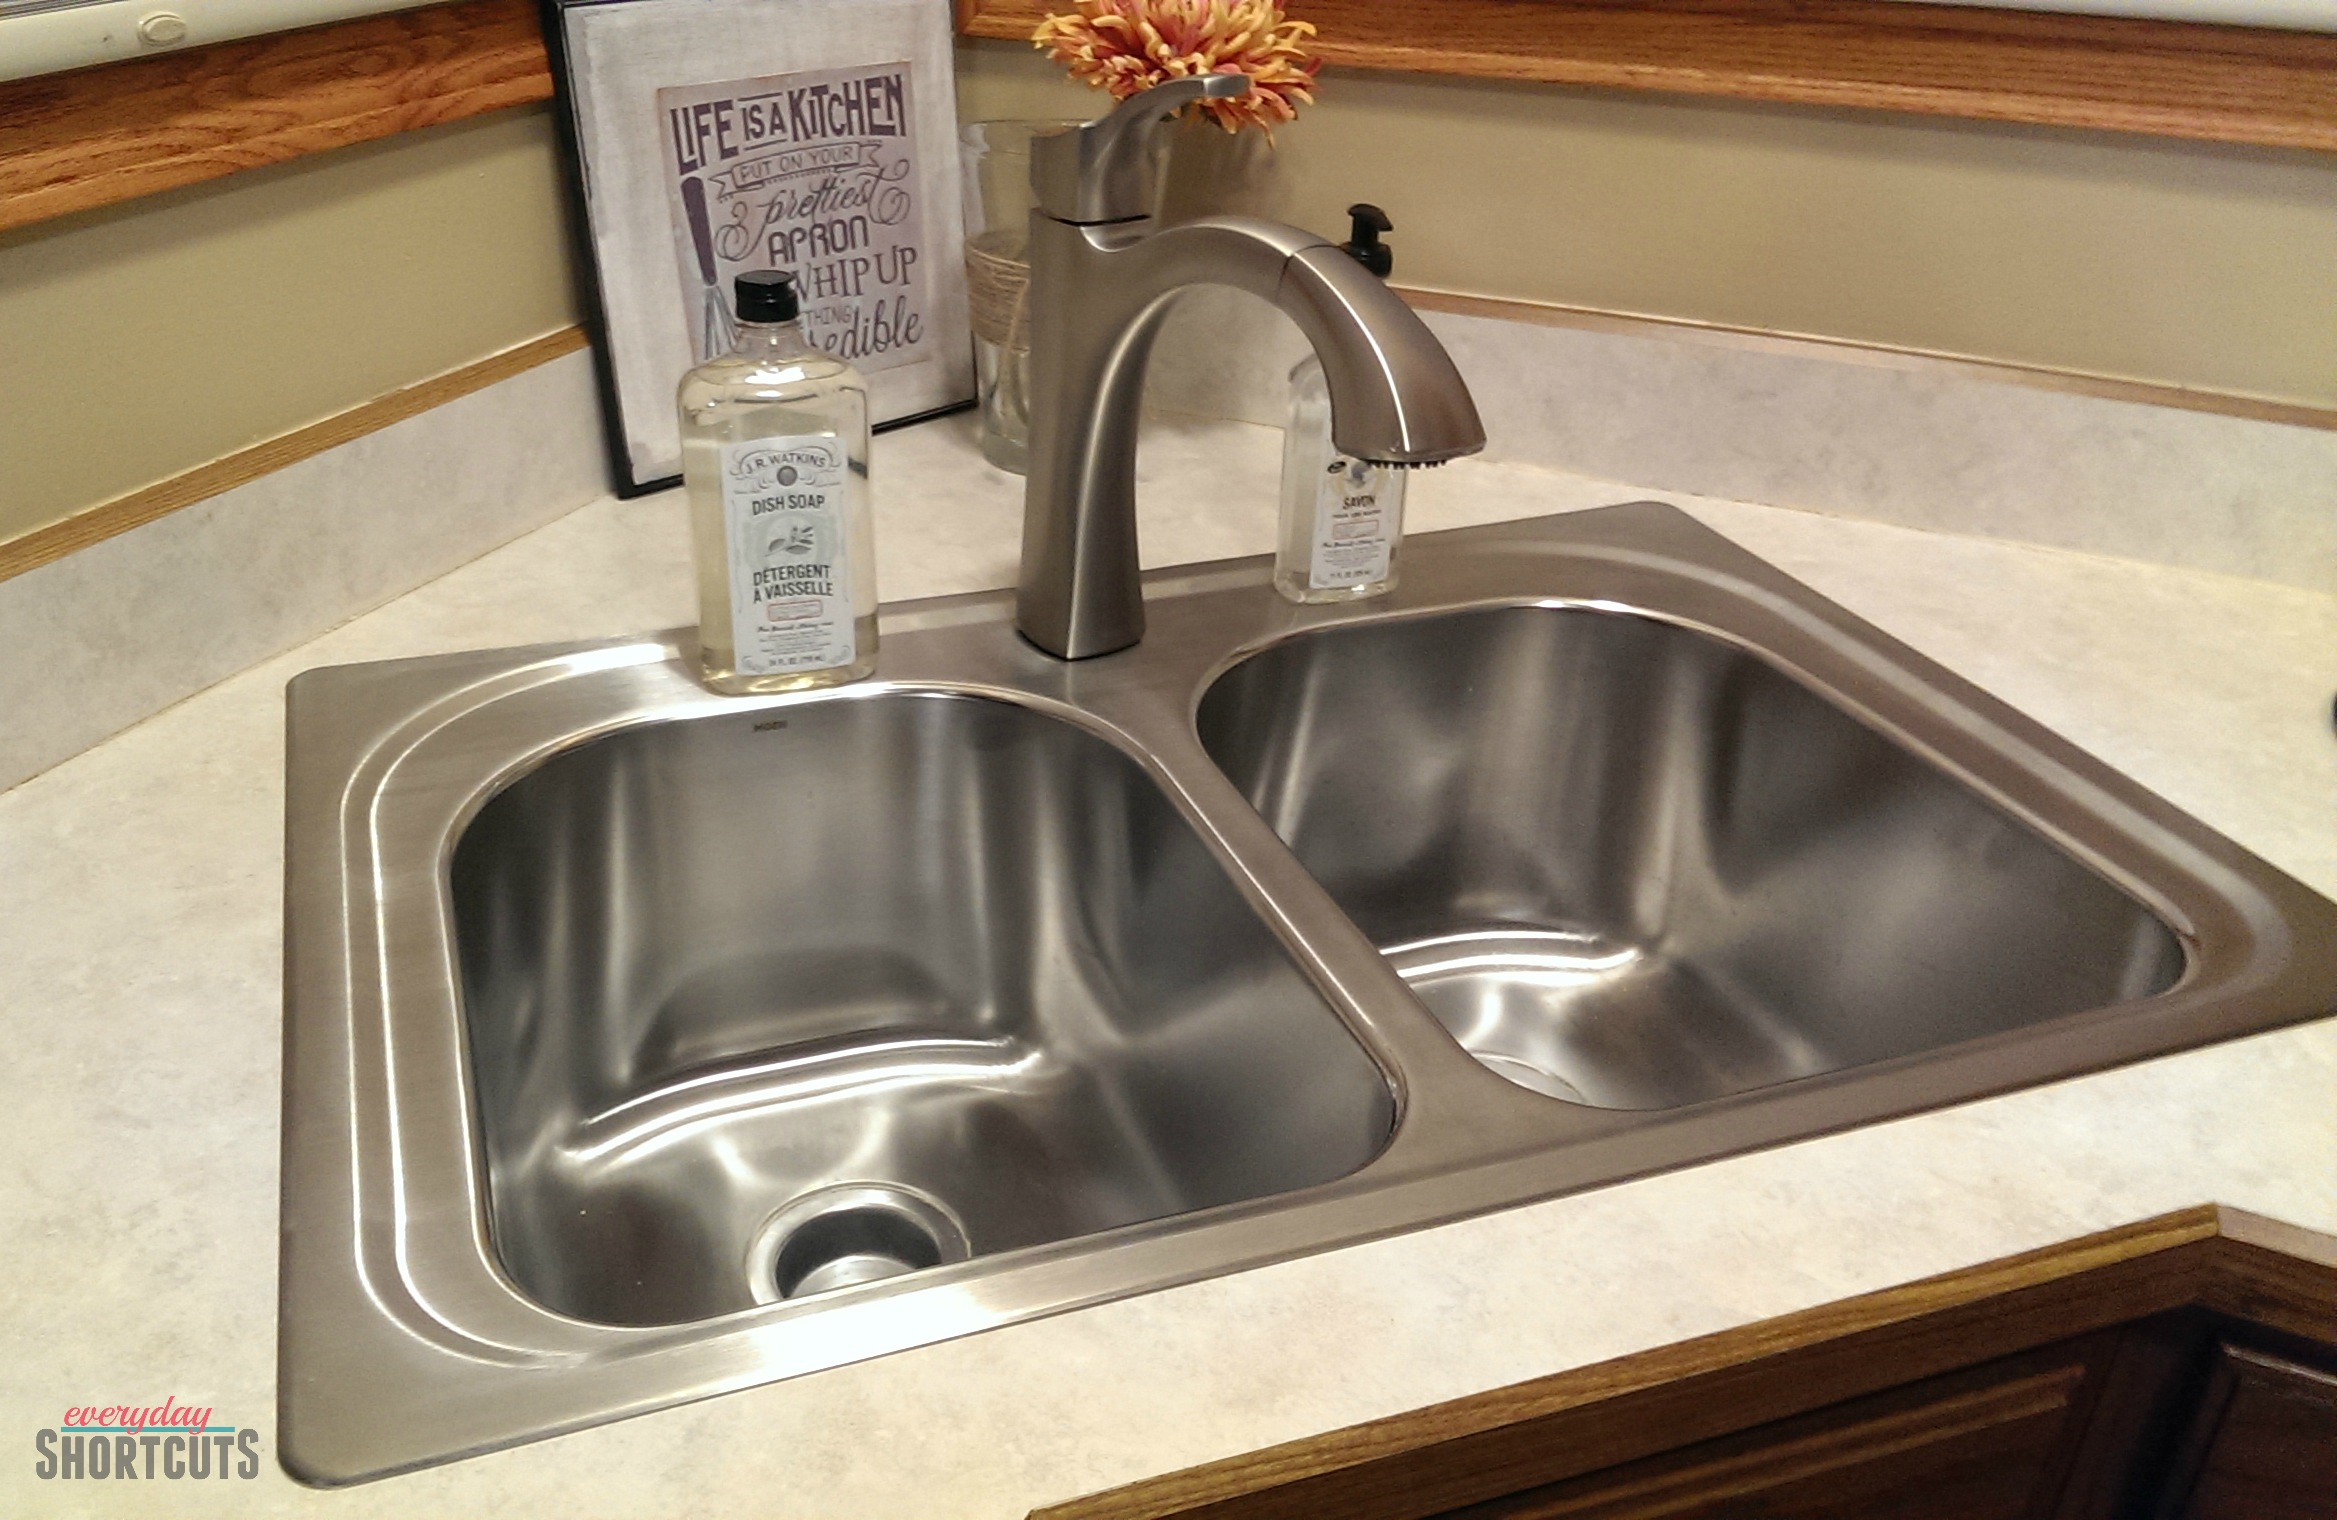 diy moen kitchen sink & faucet install - everyday shortcuts